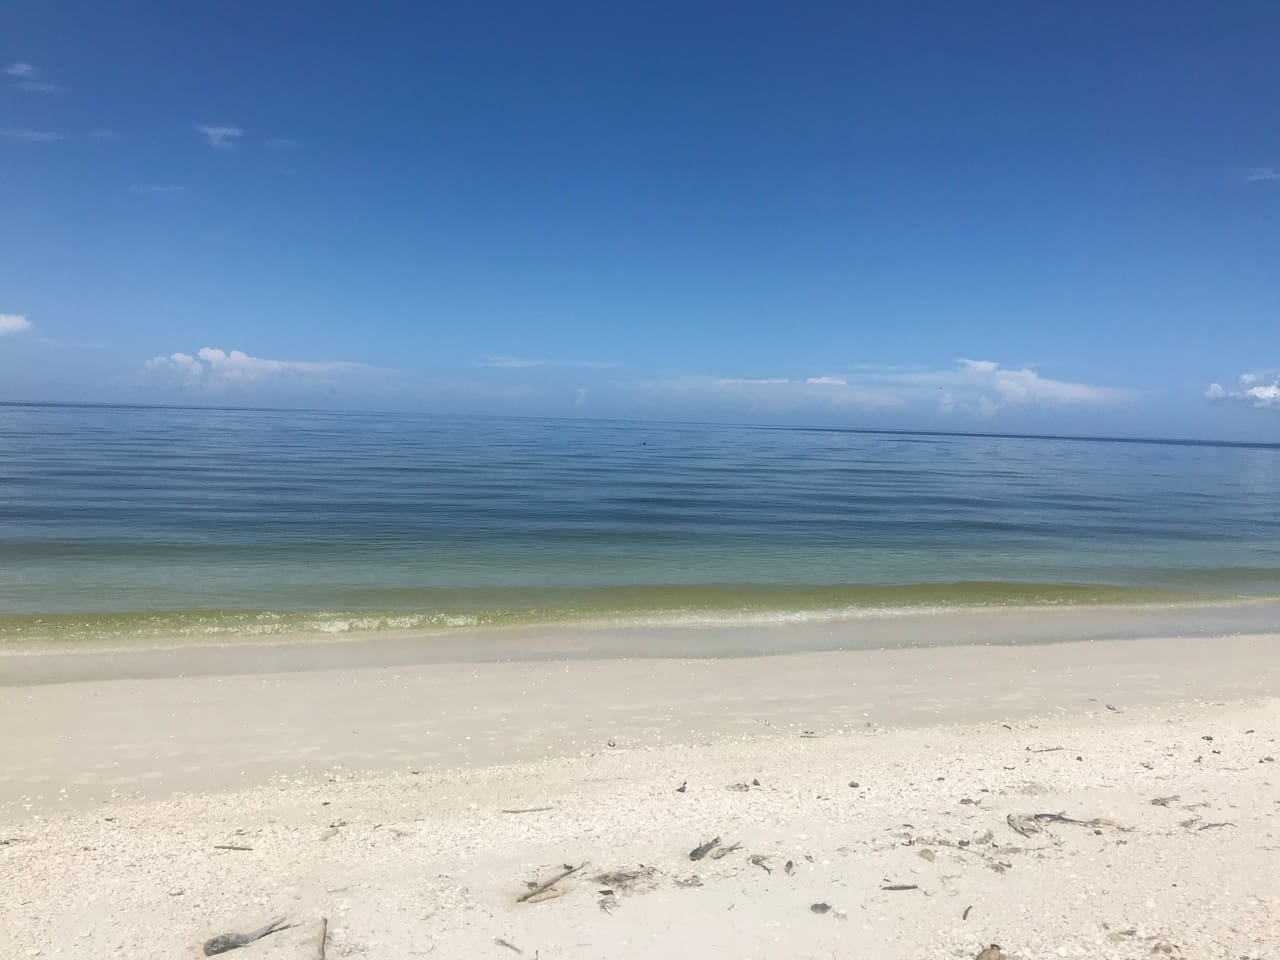 Bonita Bay's community beach just a shuttle ride away with shuttle stop steps from our spot.